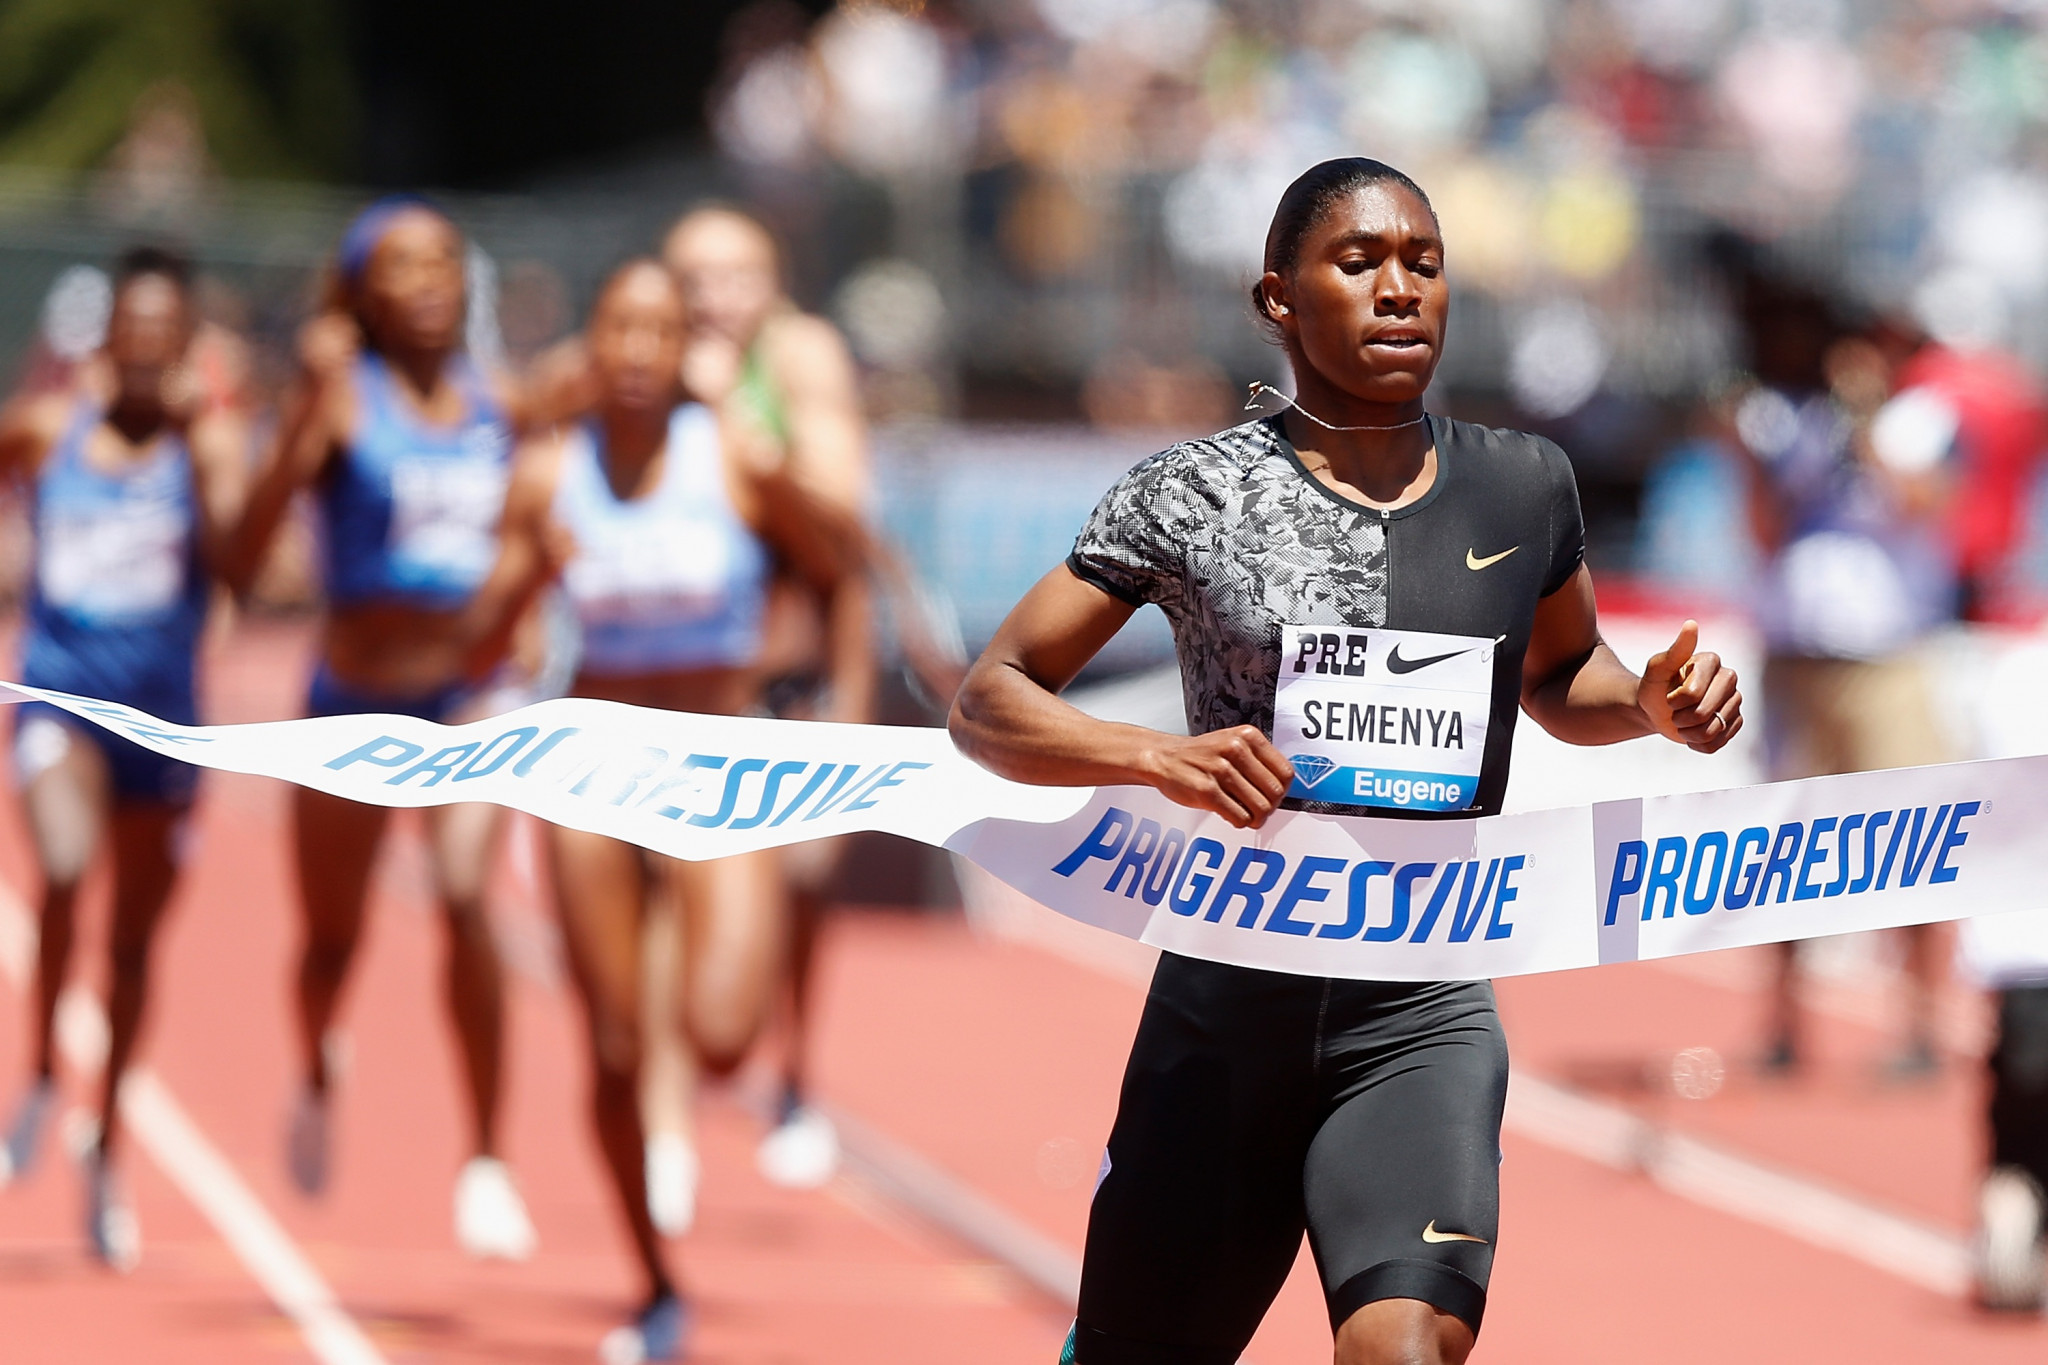 South Africa athletes such as Caster Semenya have been advised to only train at private facilities with insurance ©Getty Images